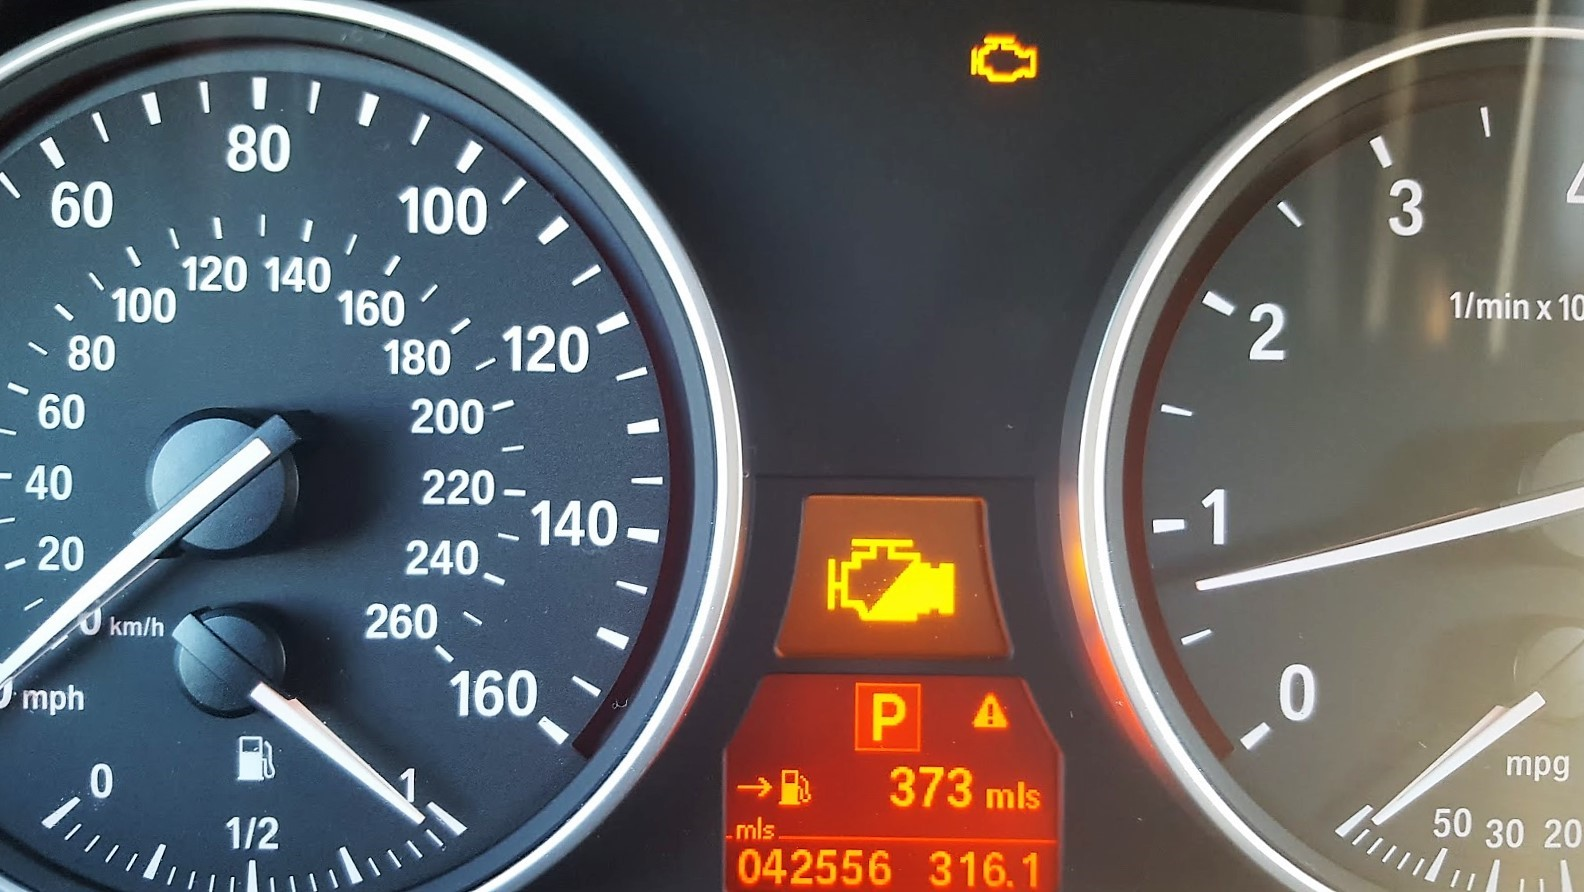 It is never a good sign when your car indicators light up and you have to check the owner's manual to see what the problem is! Here: engine malfunction; slowly proceed to the nearest service location. Um, great, just great!